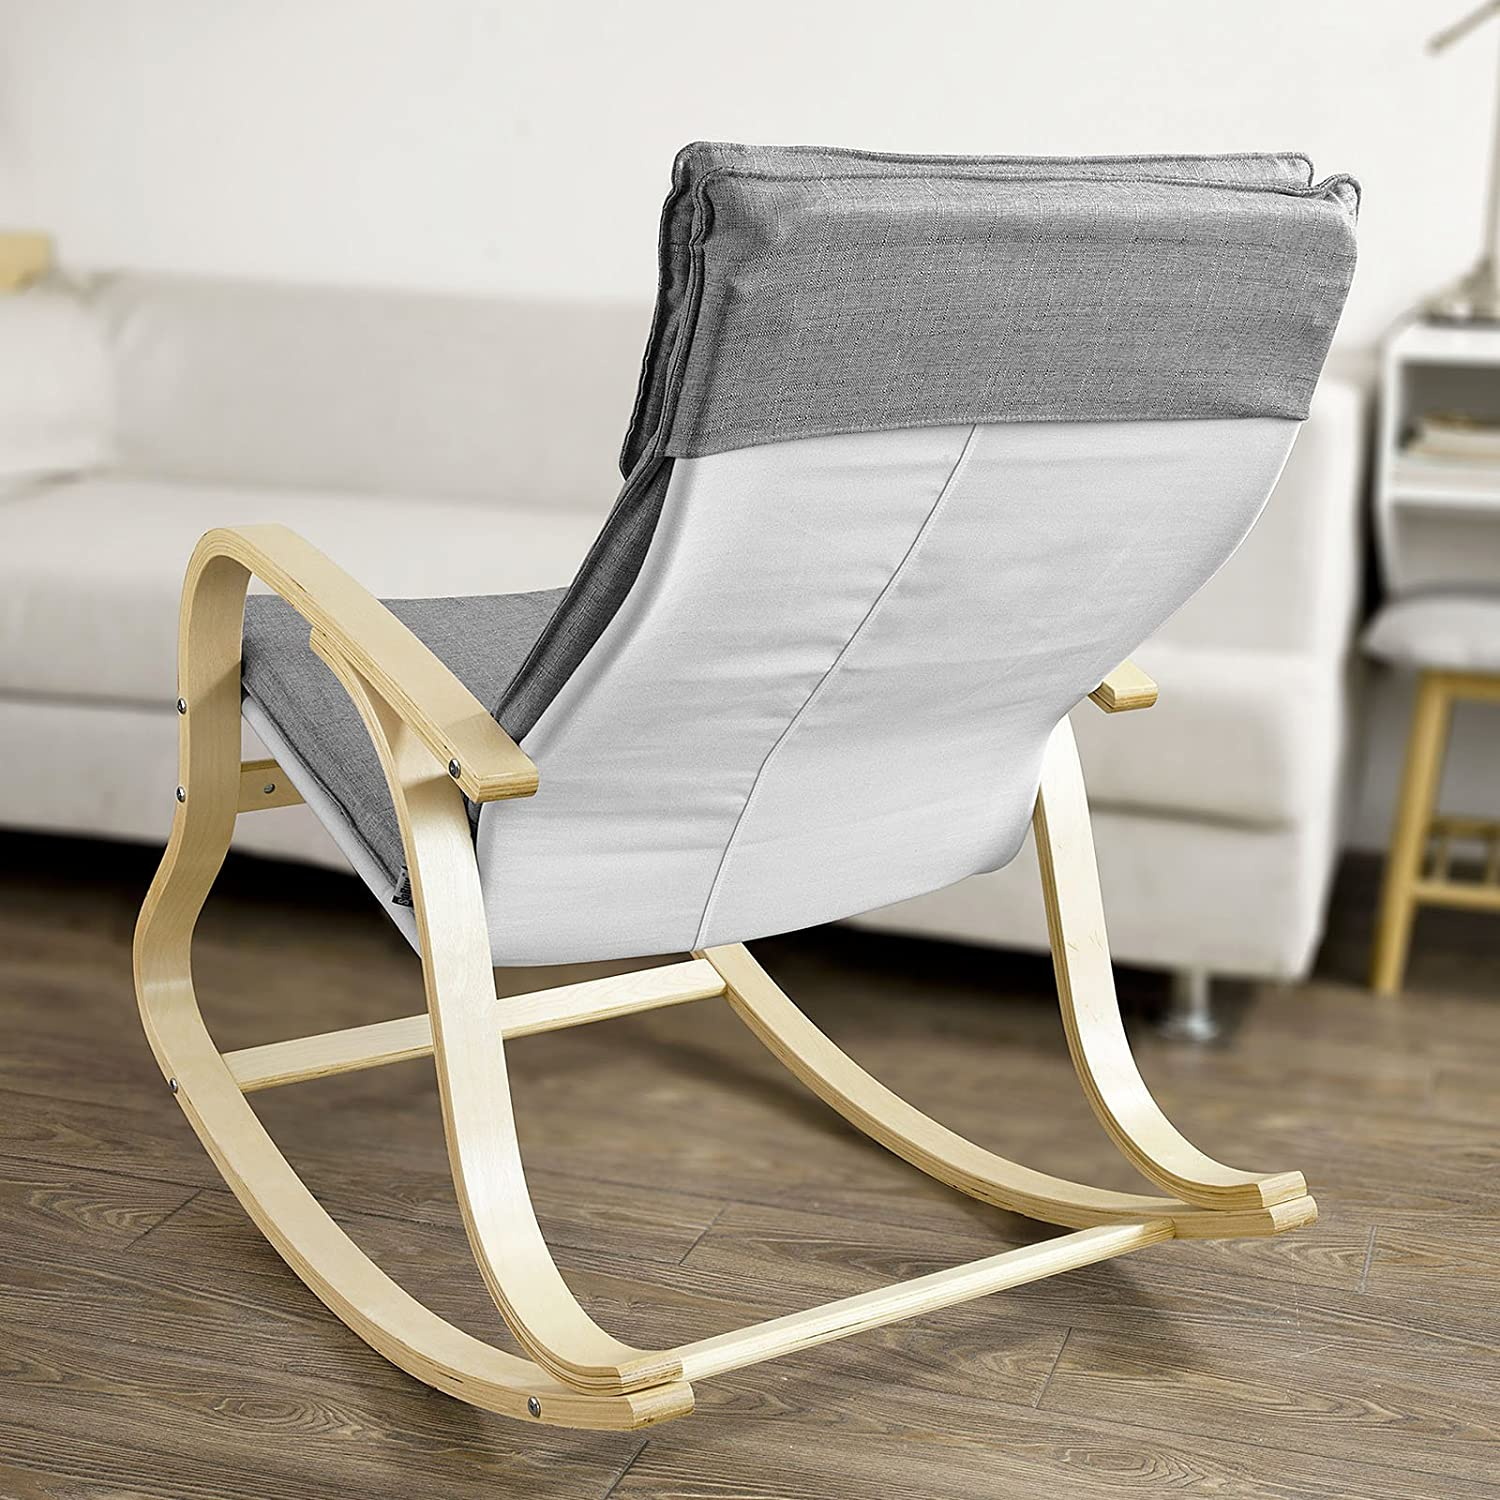 Amazon.com: SoBuy Comfortable Relax Rocking Chair, Gliders, Lounge ...